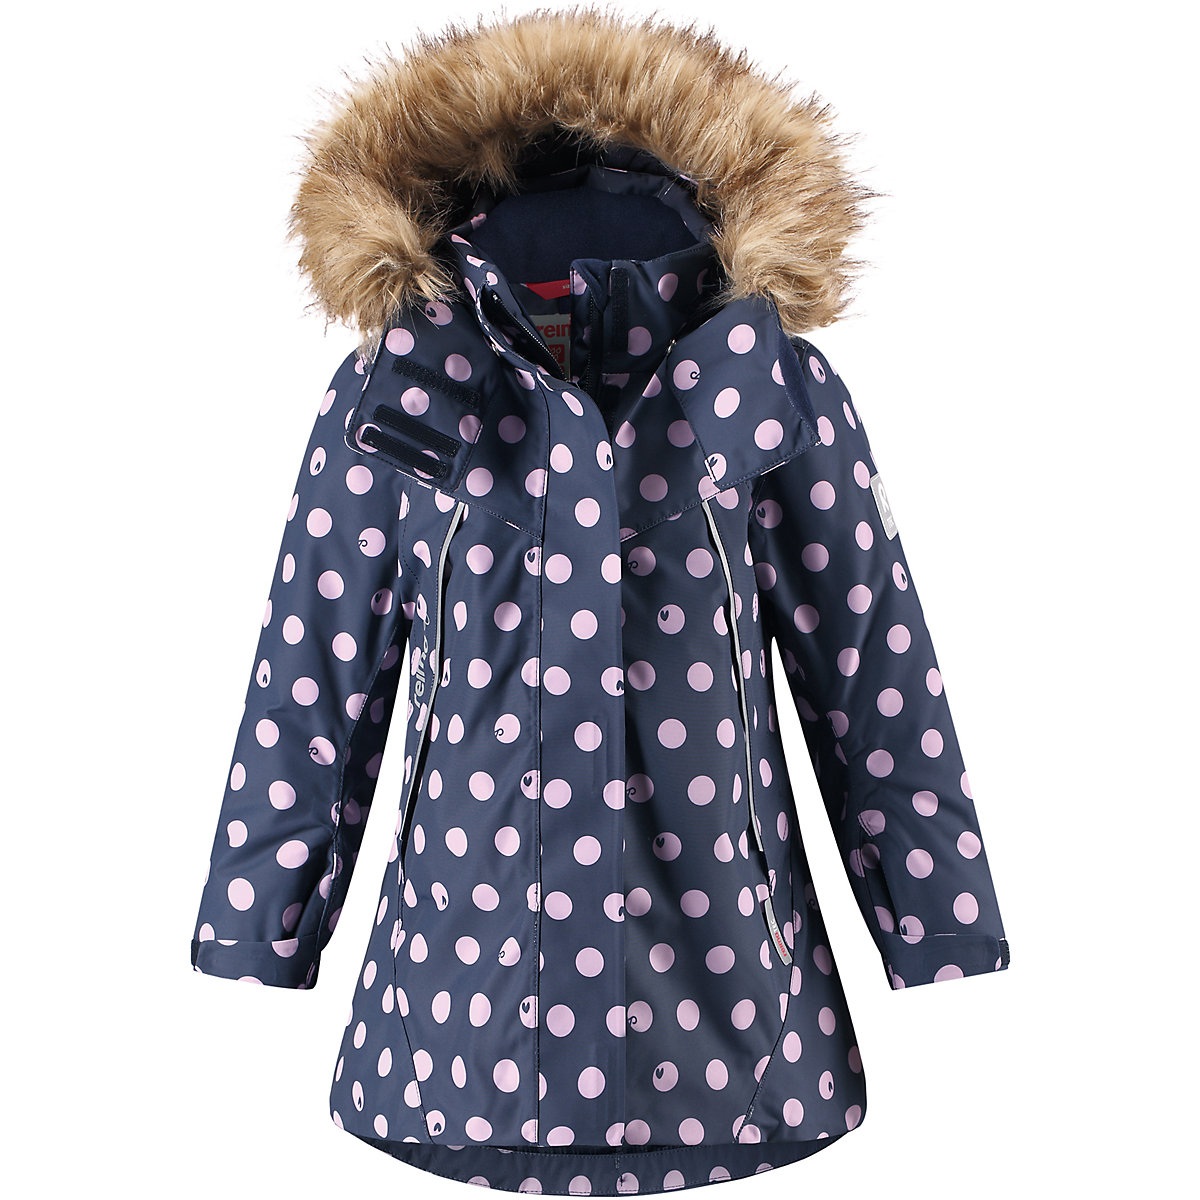 REIMA Jackets & Coats 8665390 for girls baby clothing winter warm boy girl jacket Polyester arsuxeo thermal cycling jacket winter warm up bicycle clothing windproof waterproof breathable pockets mtb bike jersey 15 k